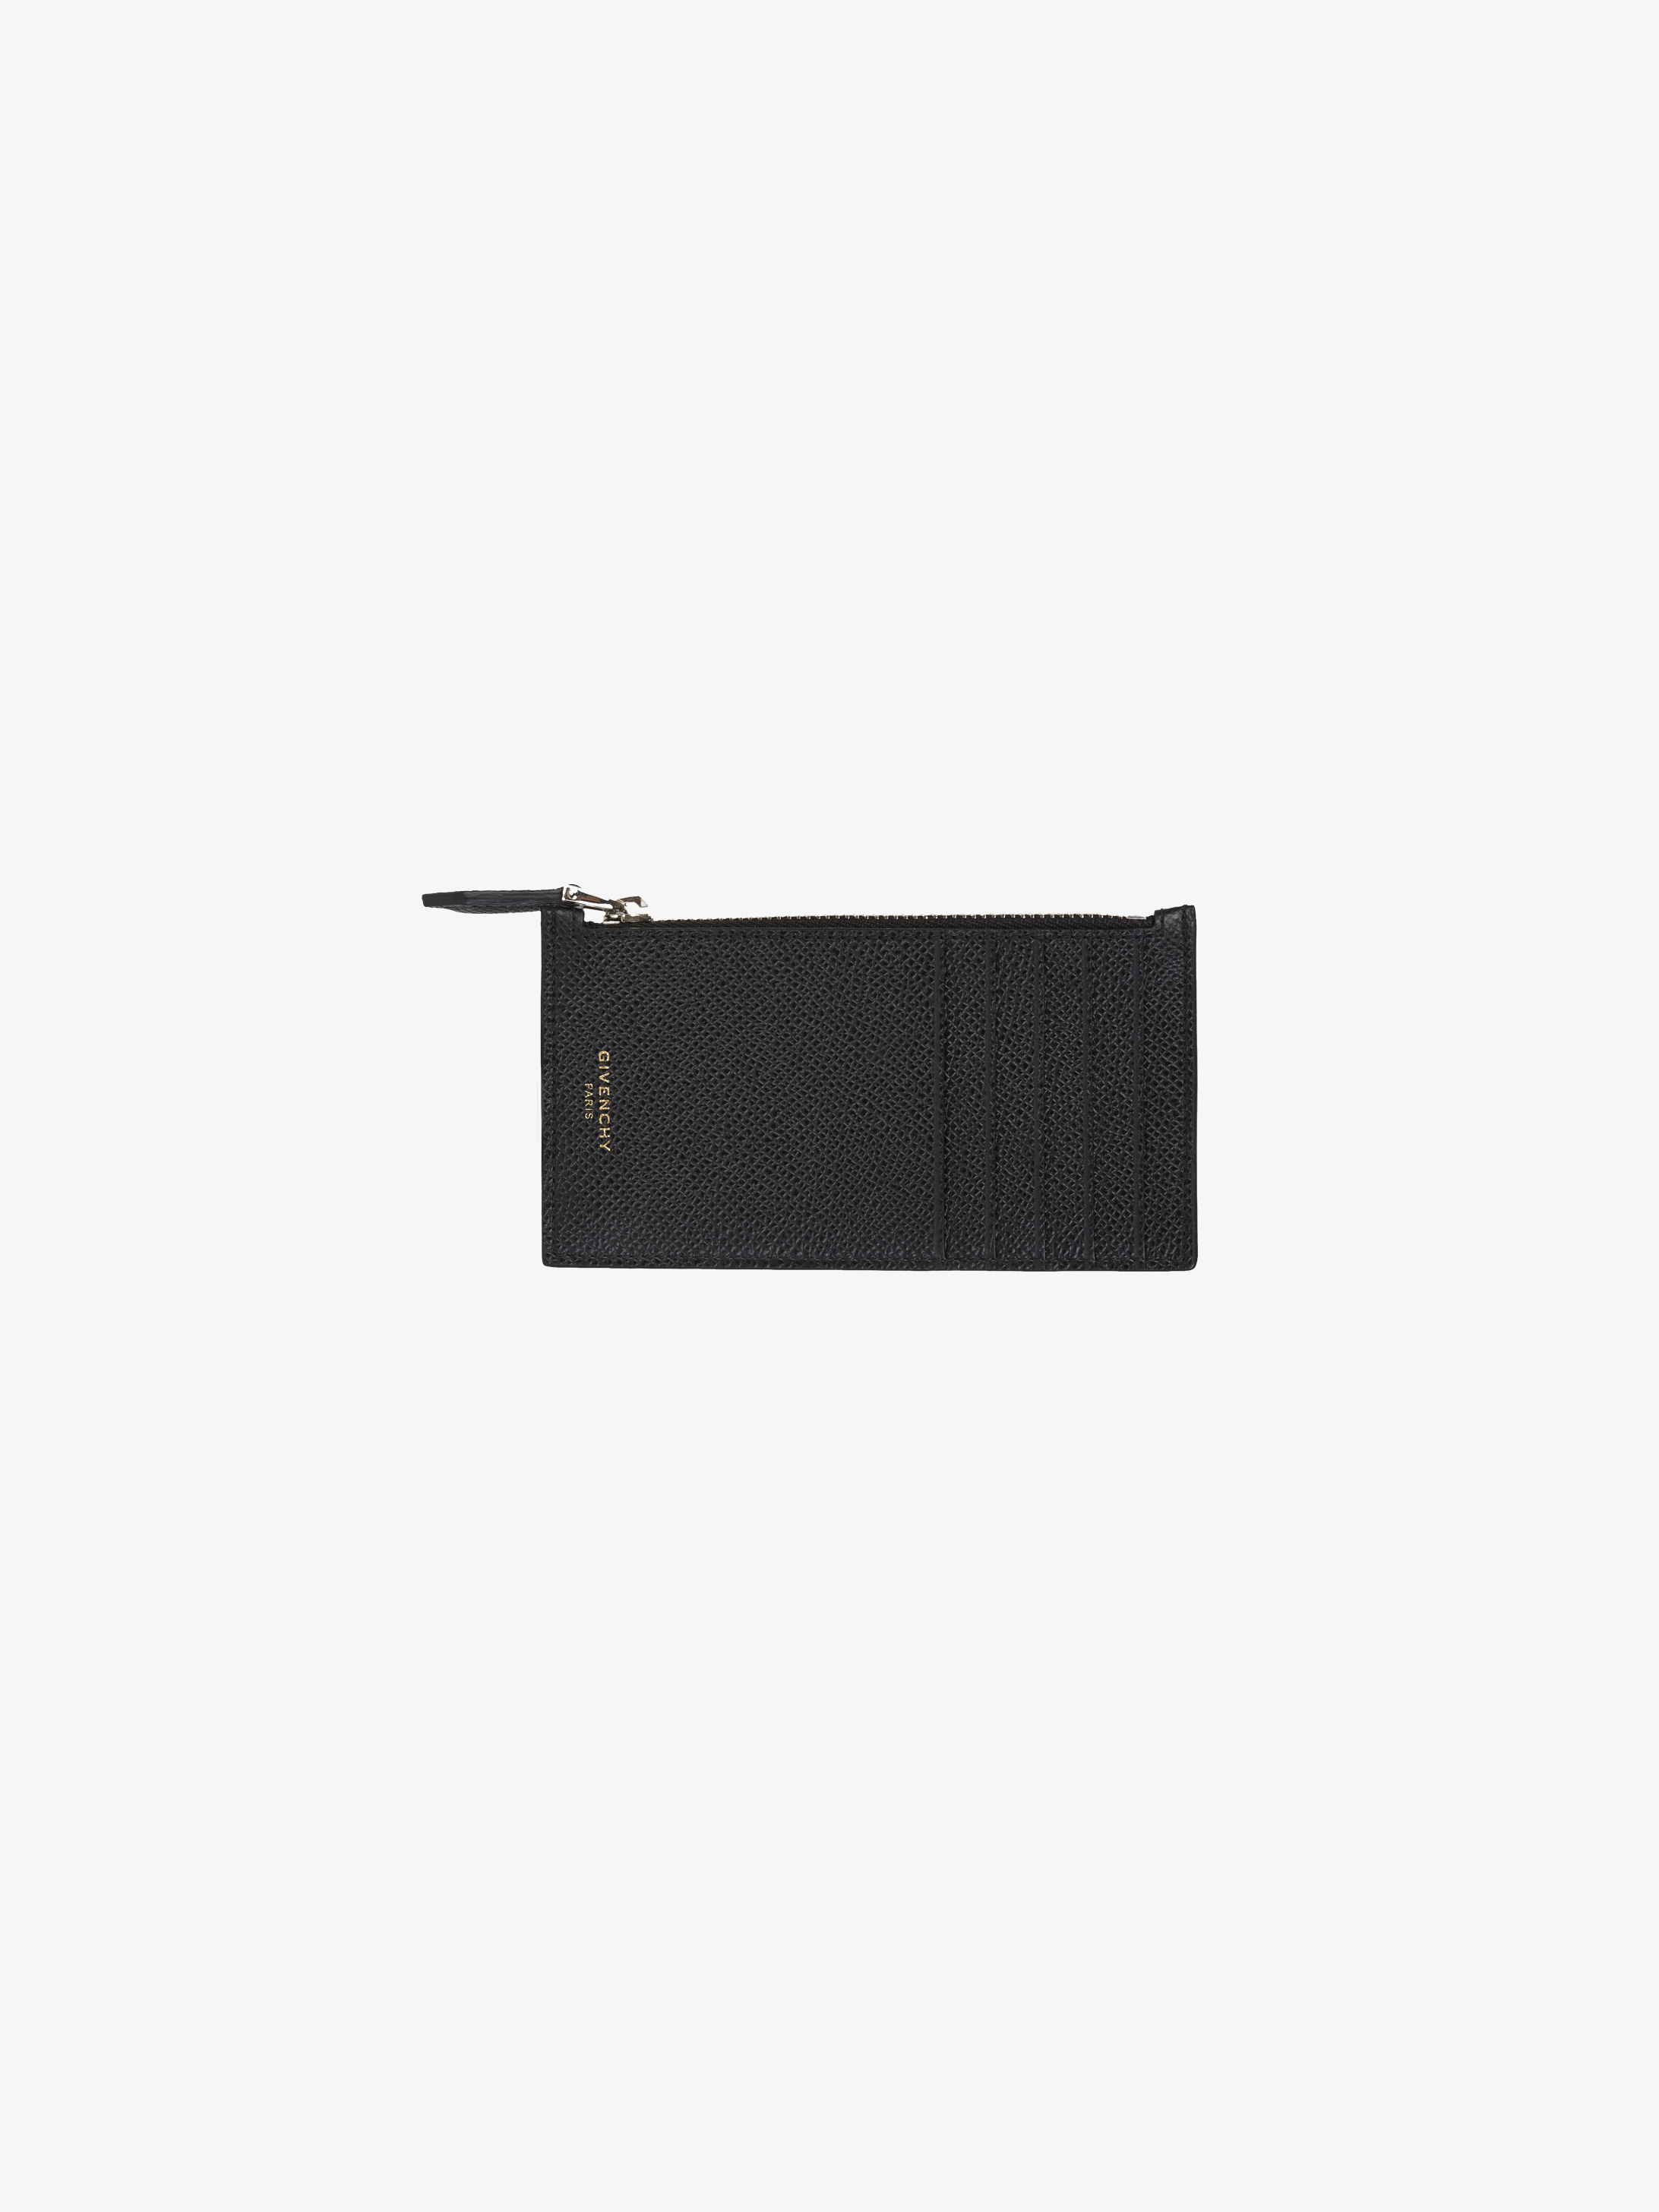 Eros zipped card holder in leather